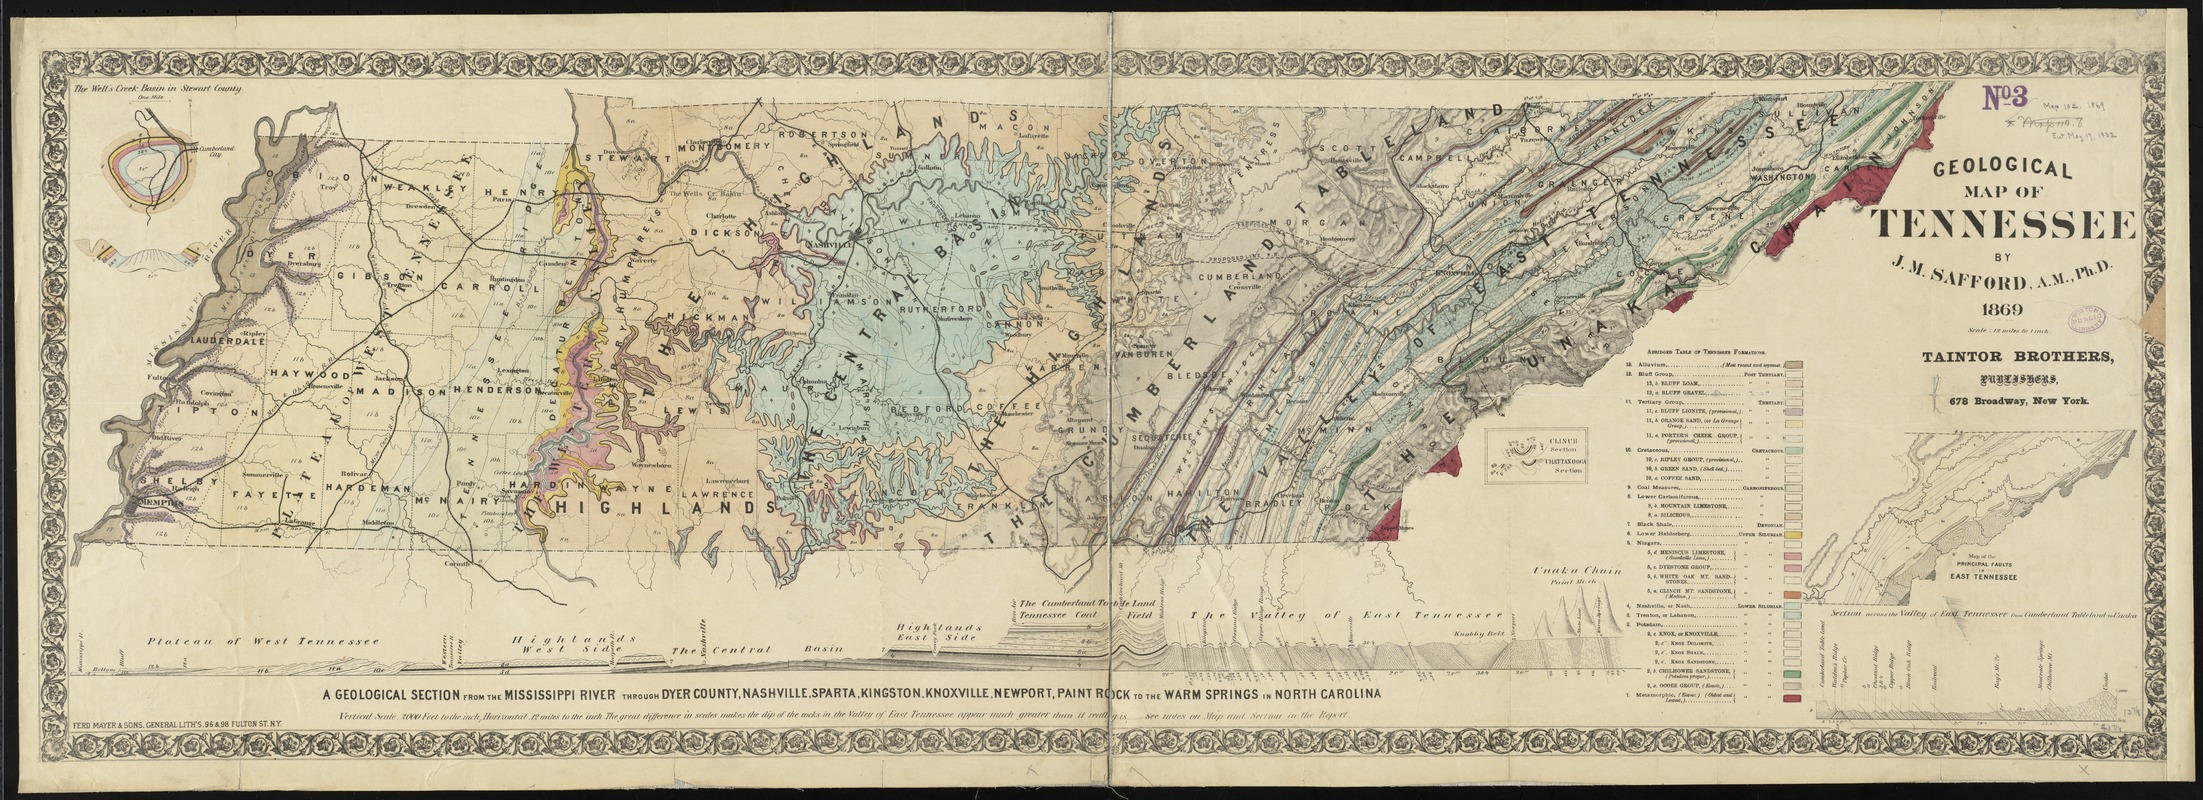 Geological map of Tennessee